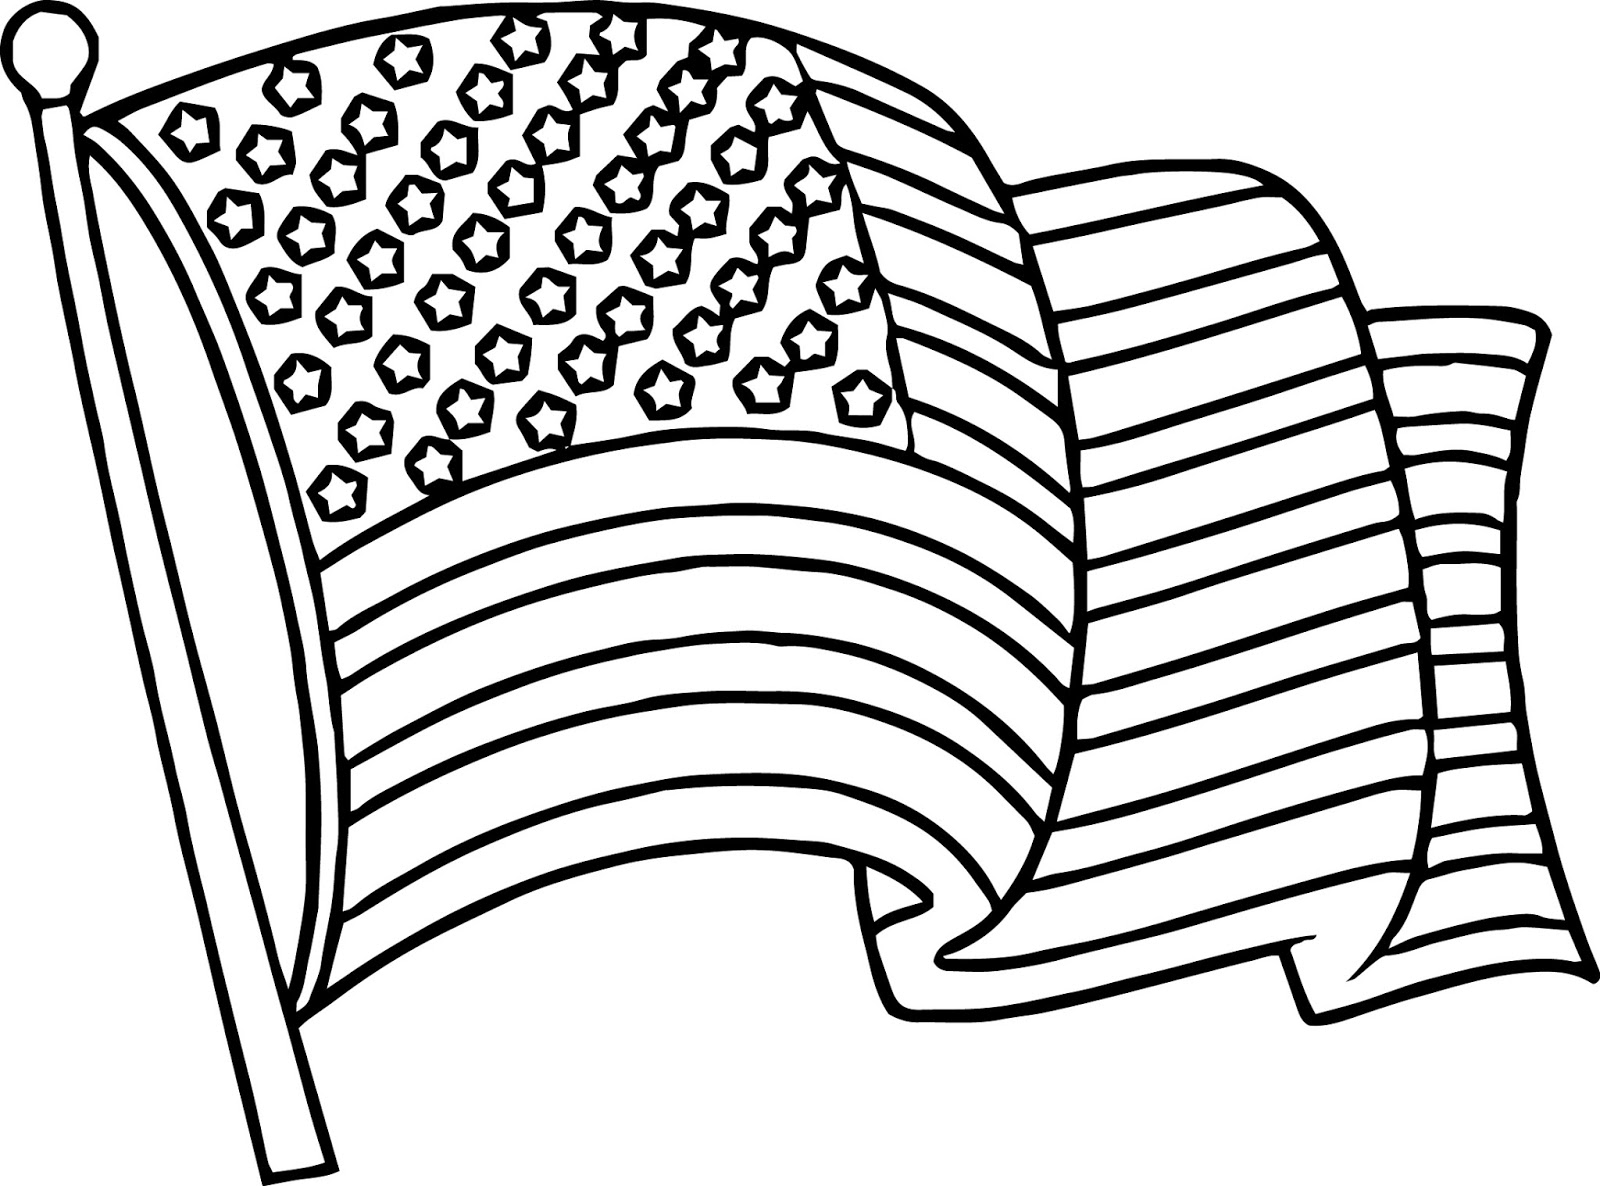 us flag coloring page american flag coloring page for the love of the country flag page us coloring